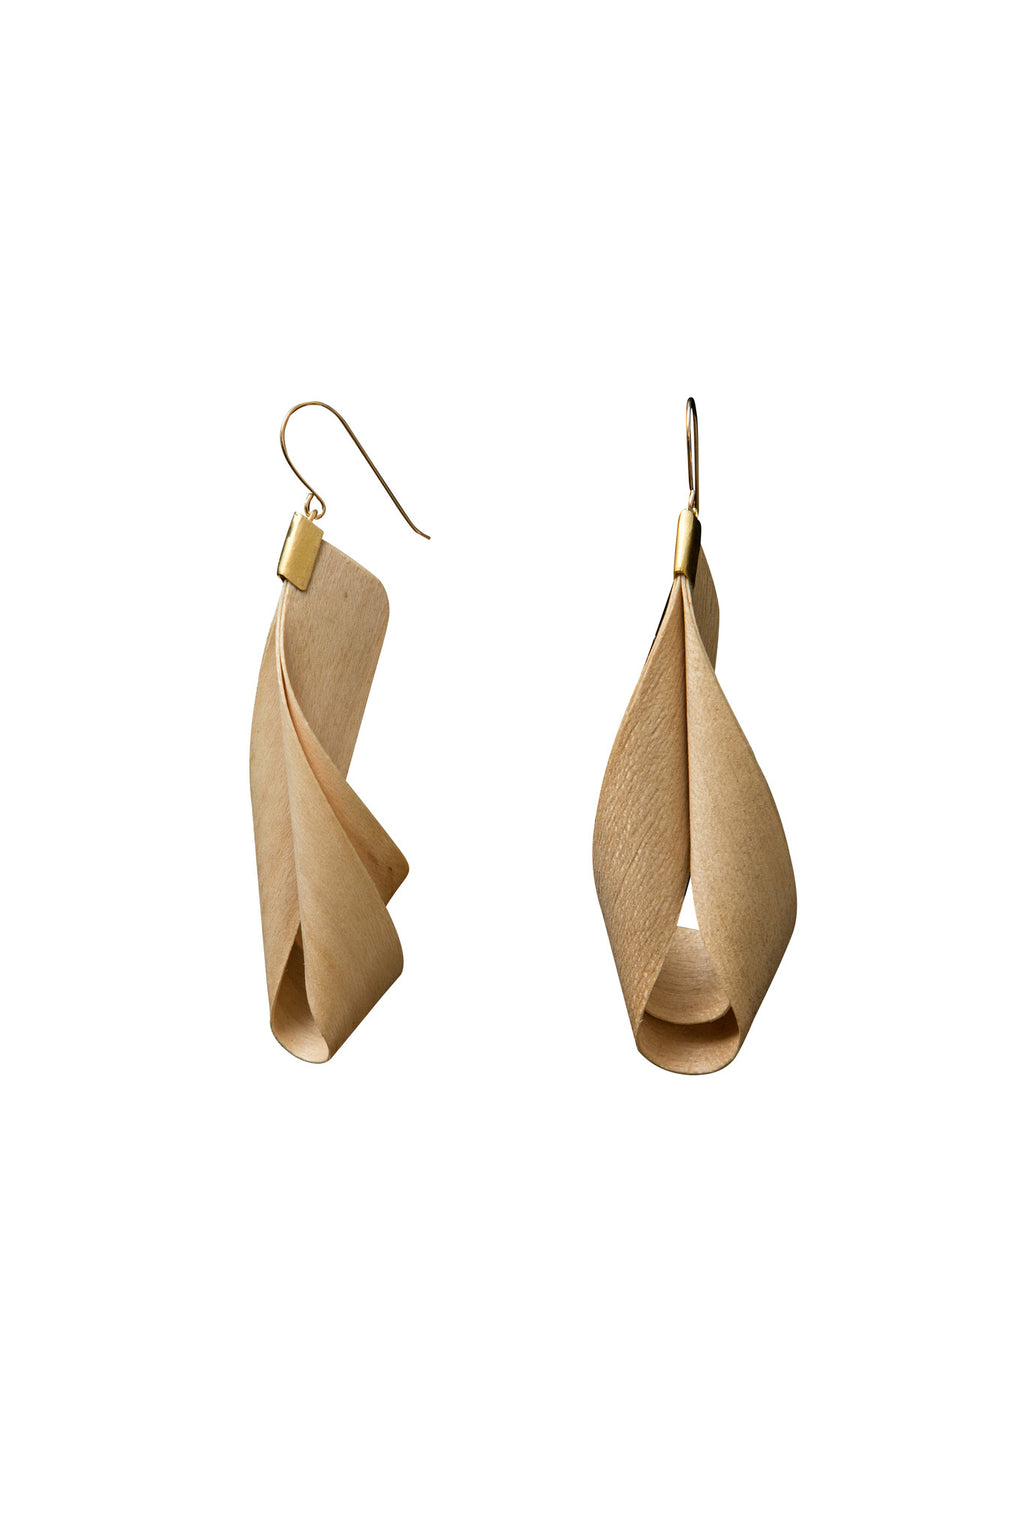 Ezekiel Design, Wooden earrings, Minimalism, Minimal Design, Gift for her